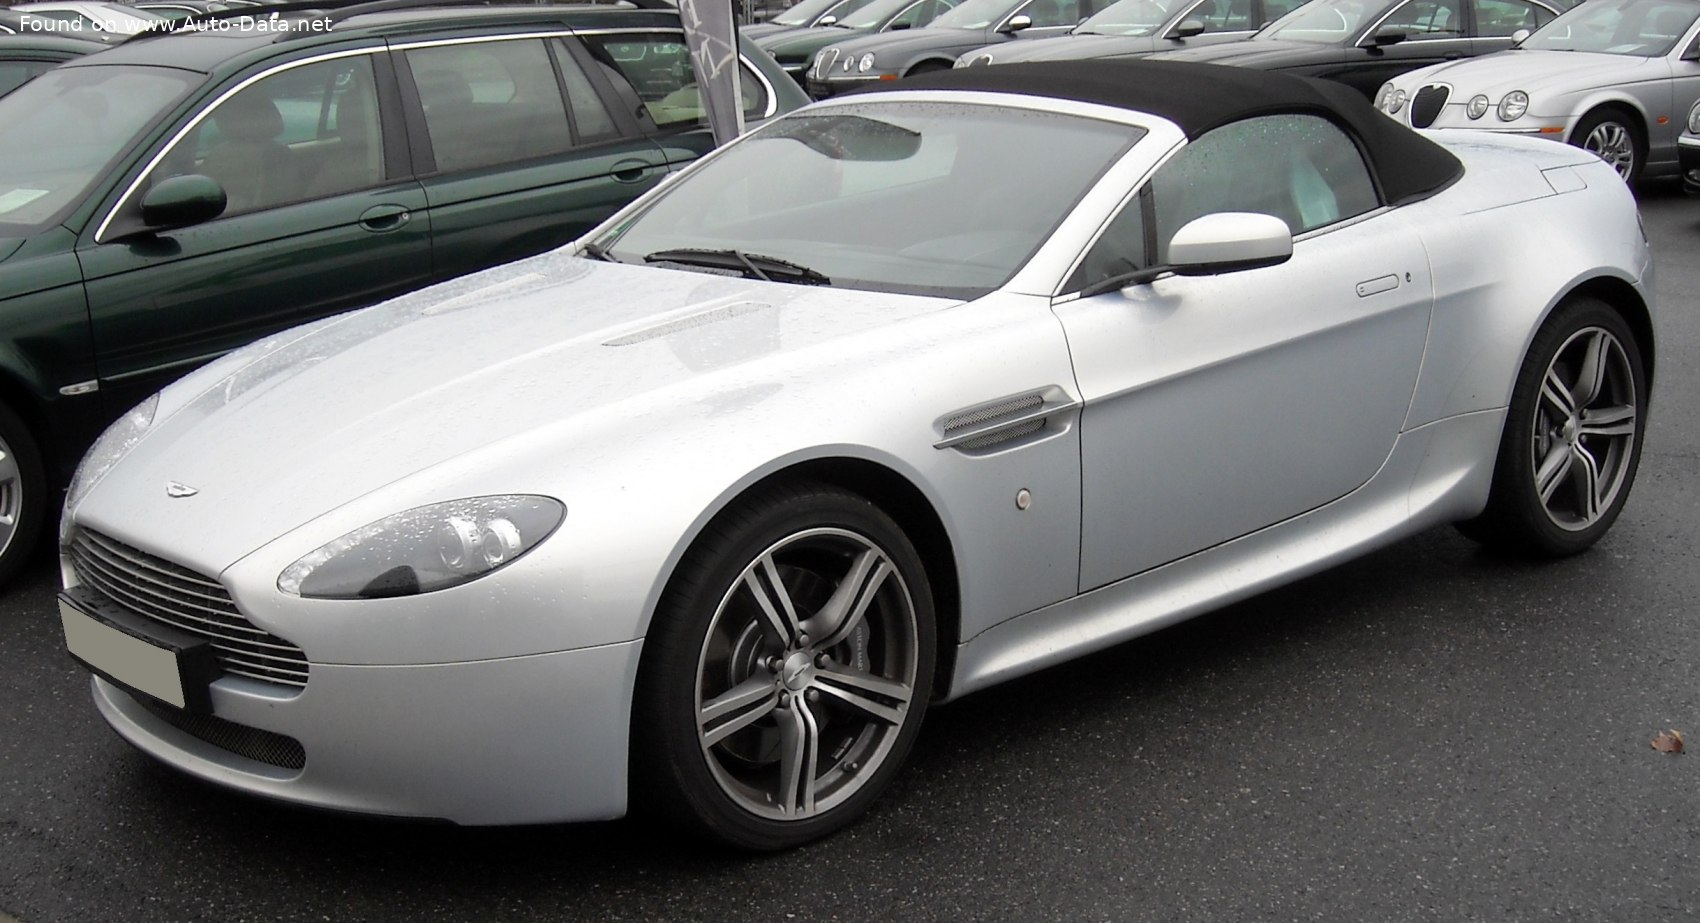 2006 Aston Martin V8 Vantage Roadster 2005 Technical Specs Fuel Consumption Dimensions